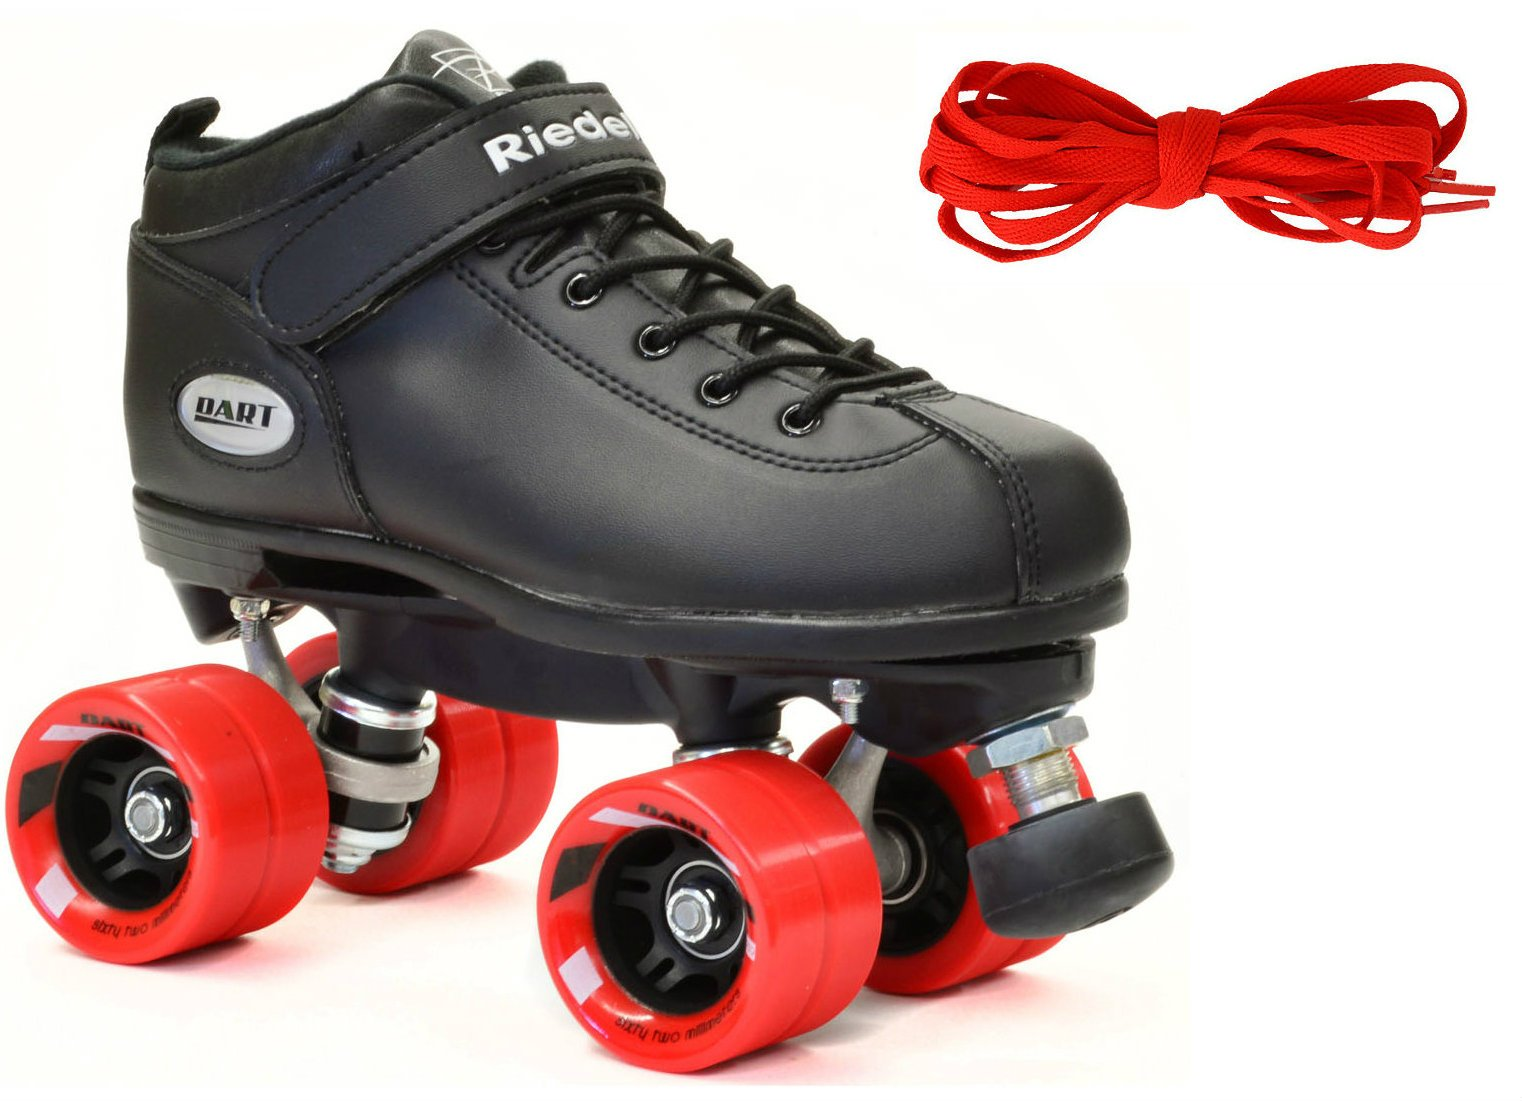 Riedell Black Dart Quad Speed Skates w/ Red Wheels & 2 Pair of Laces (Red & Black) (Kids 3) by Riedell